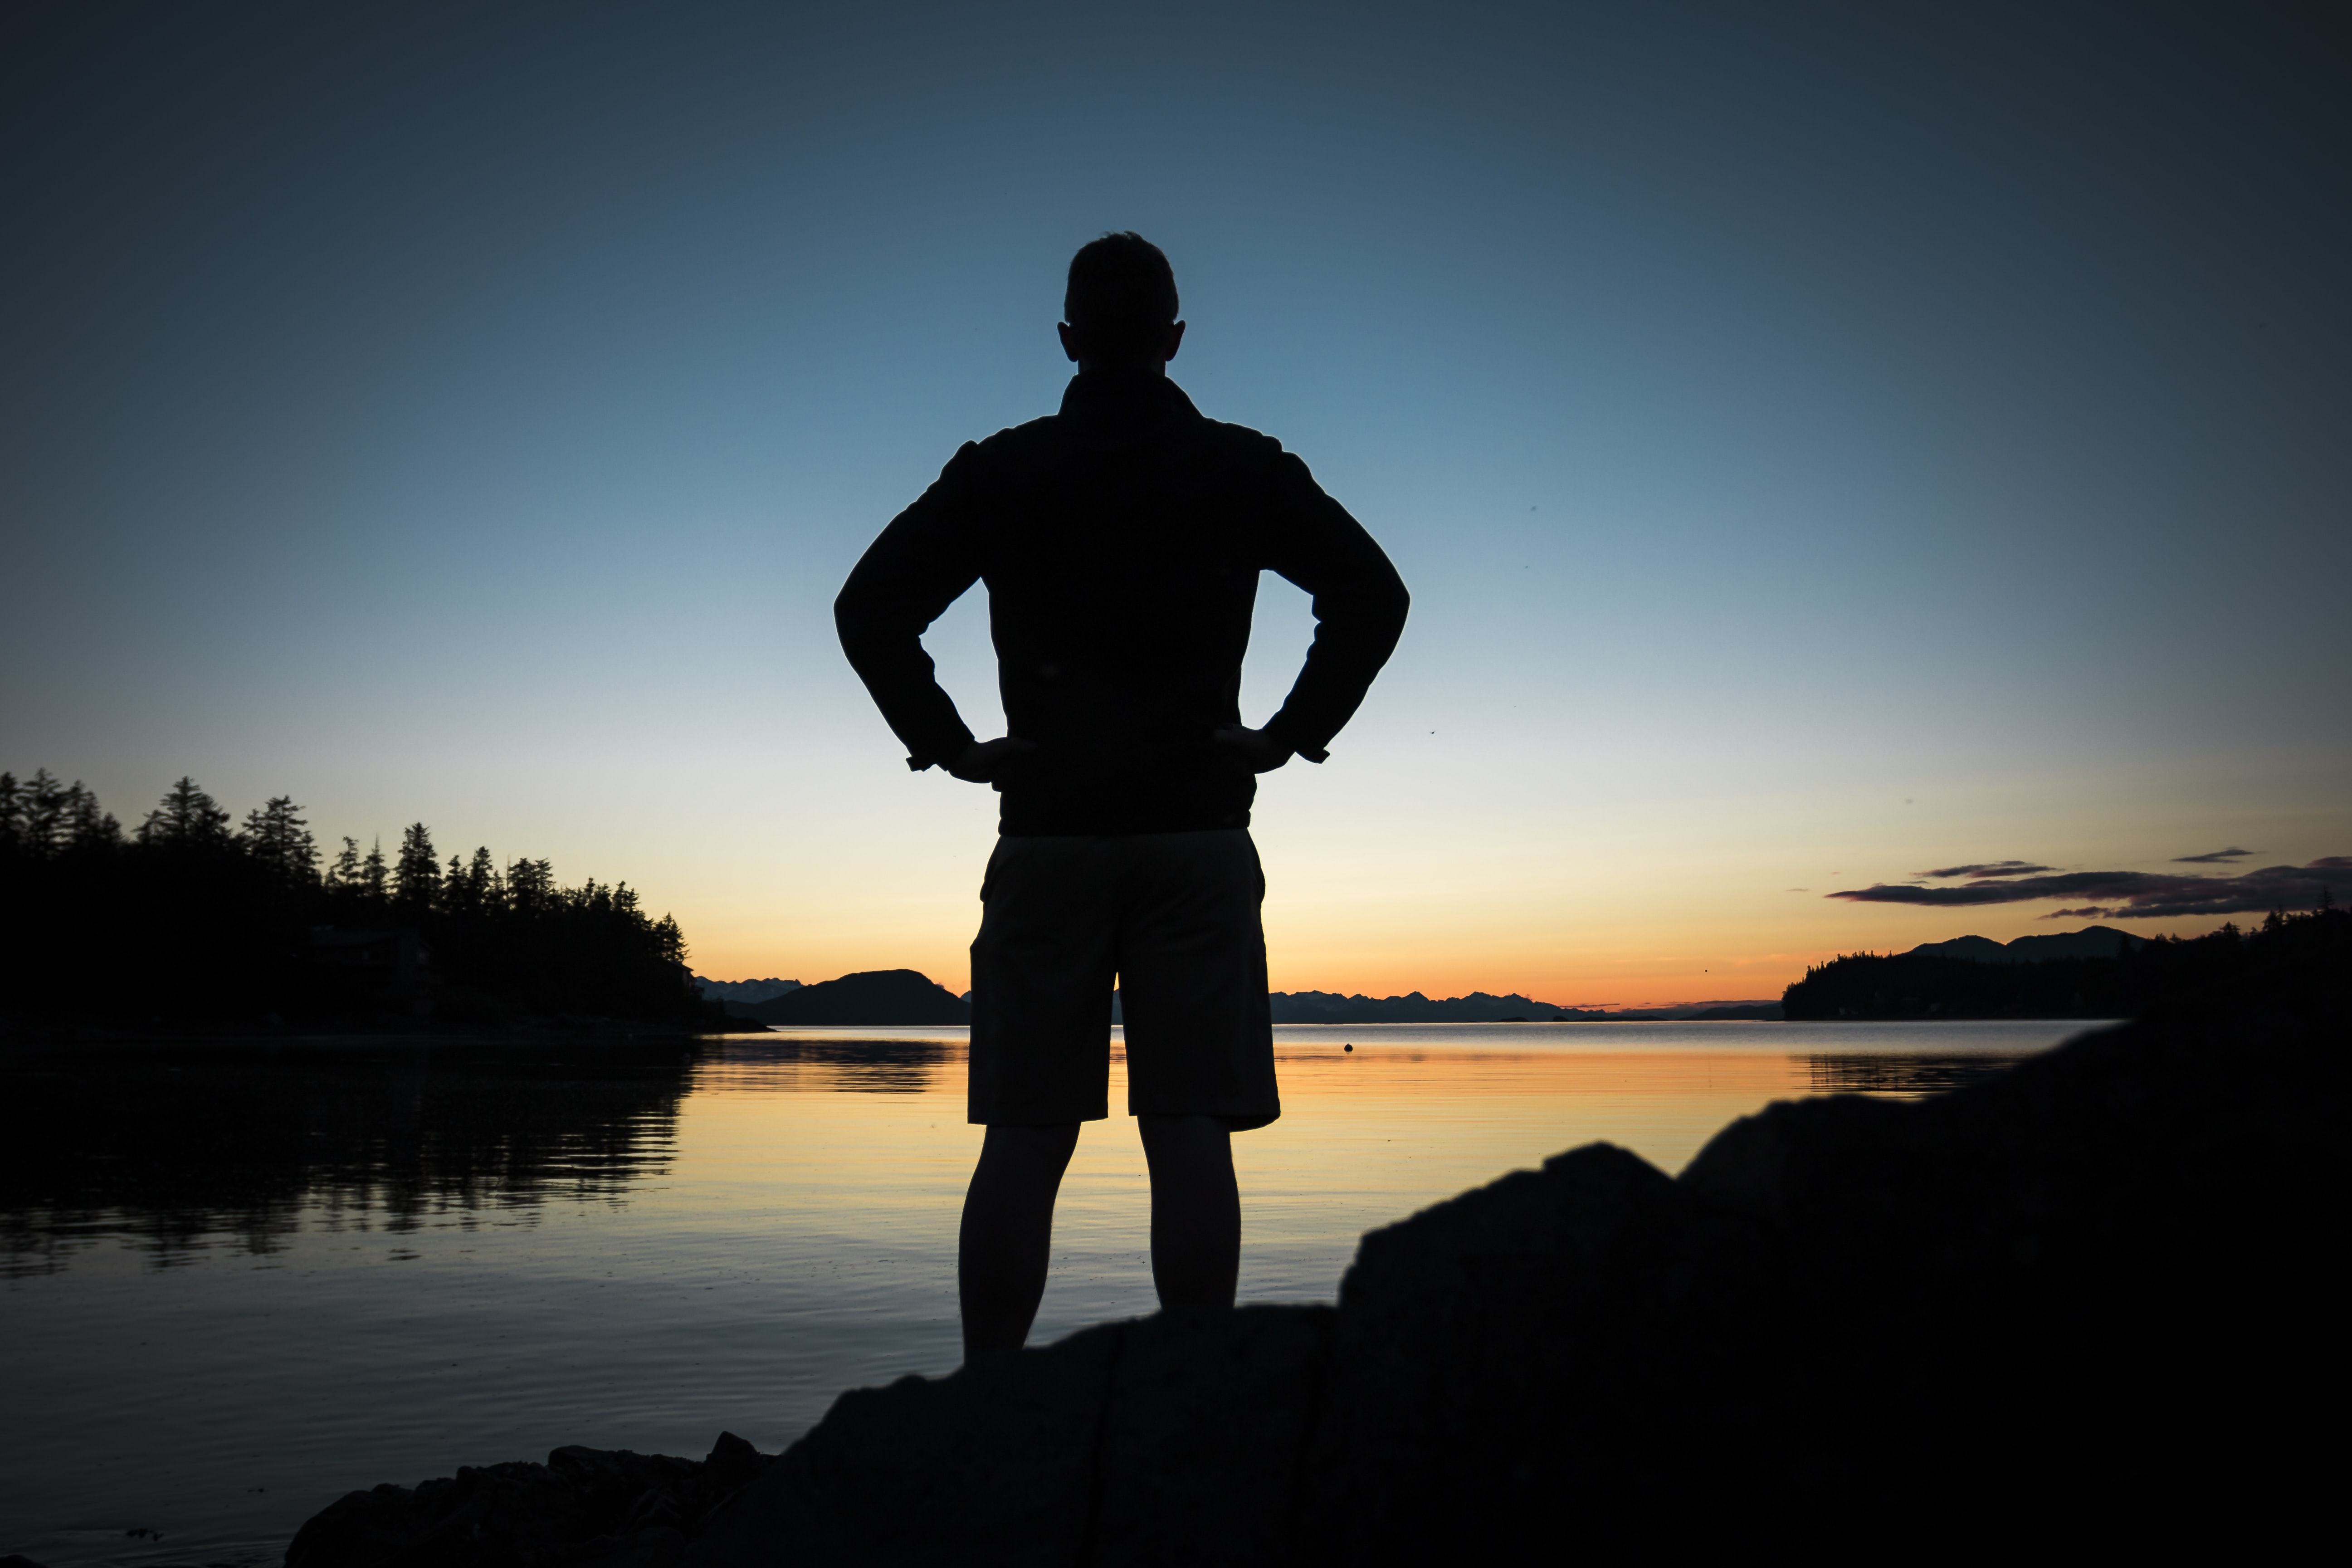 silhouette of man standing near body of water during golden hour